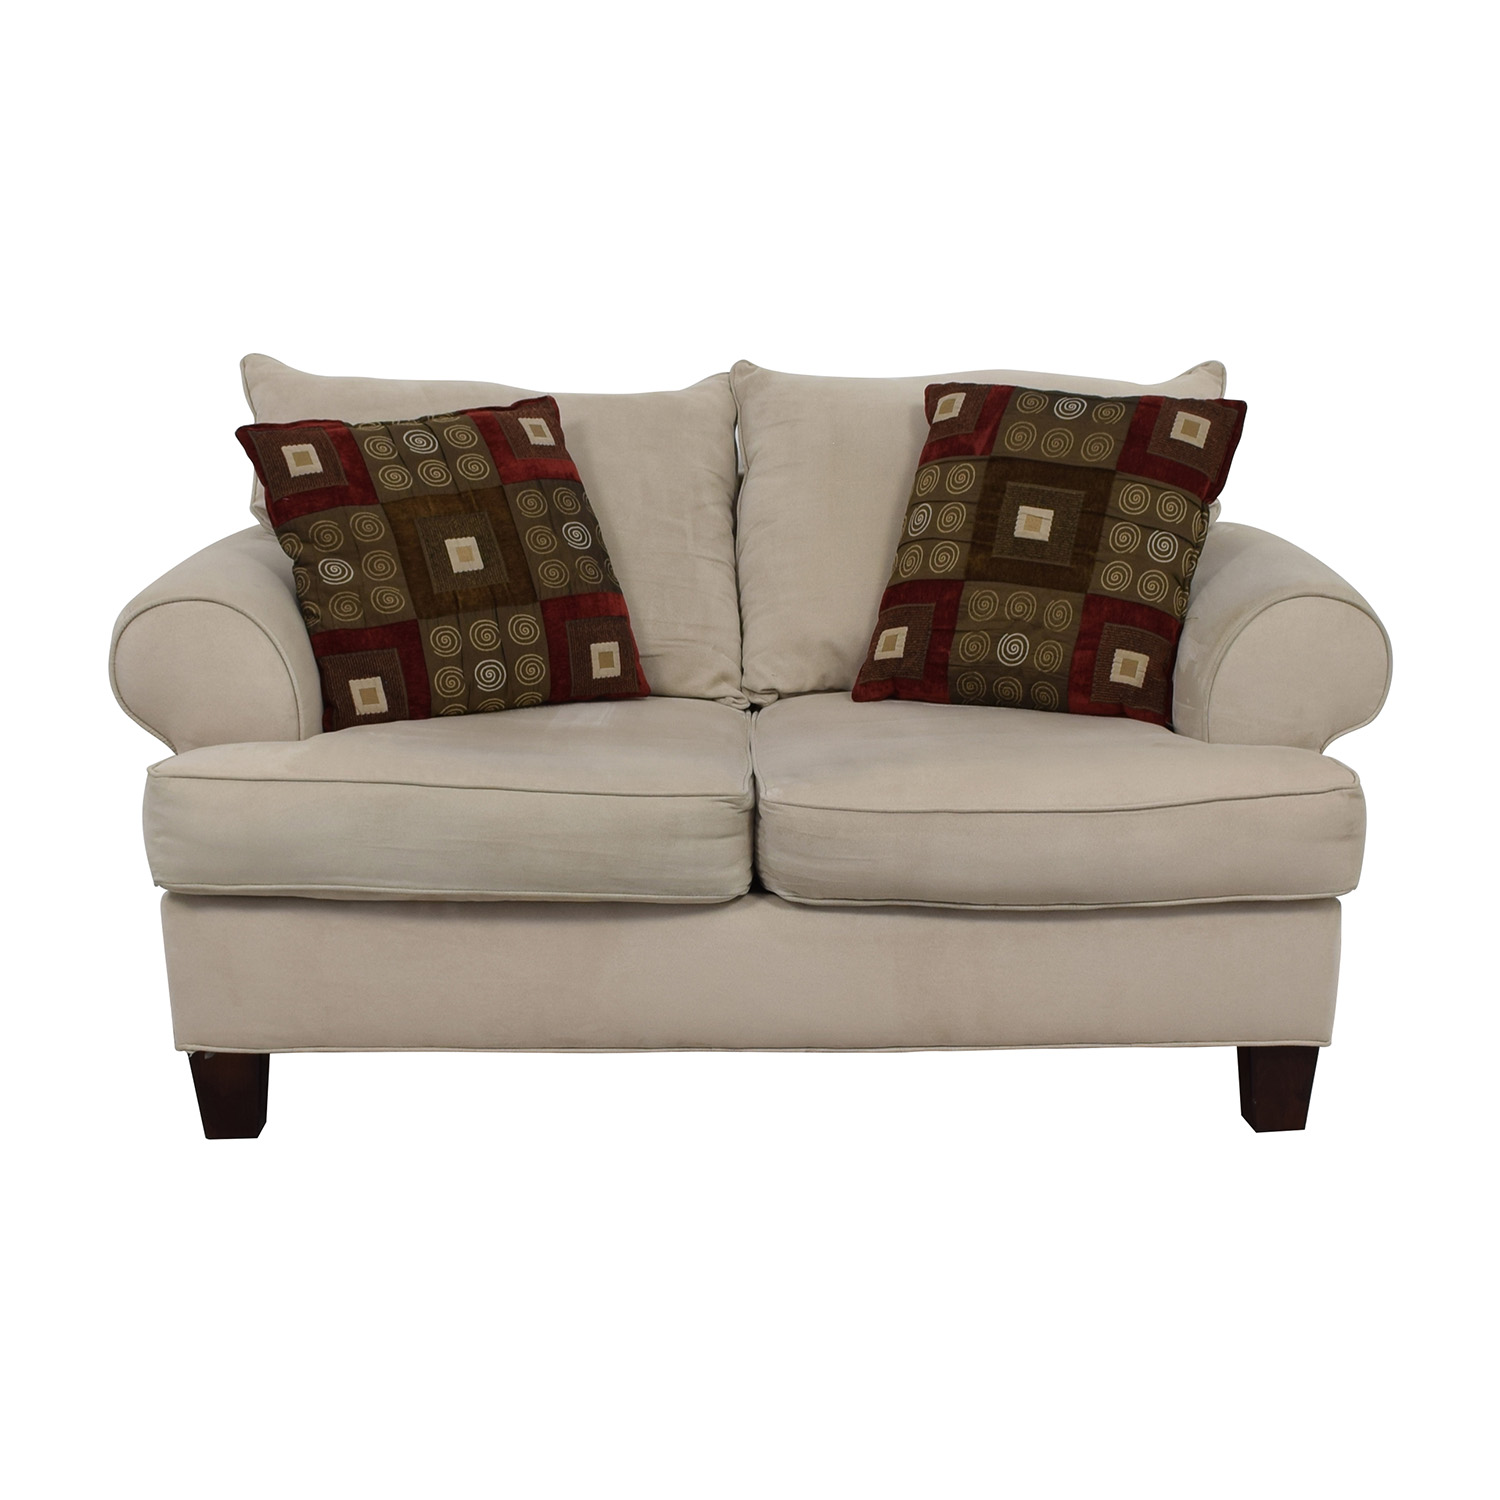 Bobs Discount Furniture Bobs Discount Furniture Cream Love Seat nyc